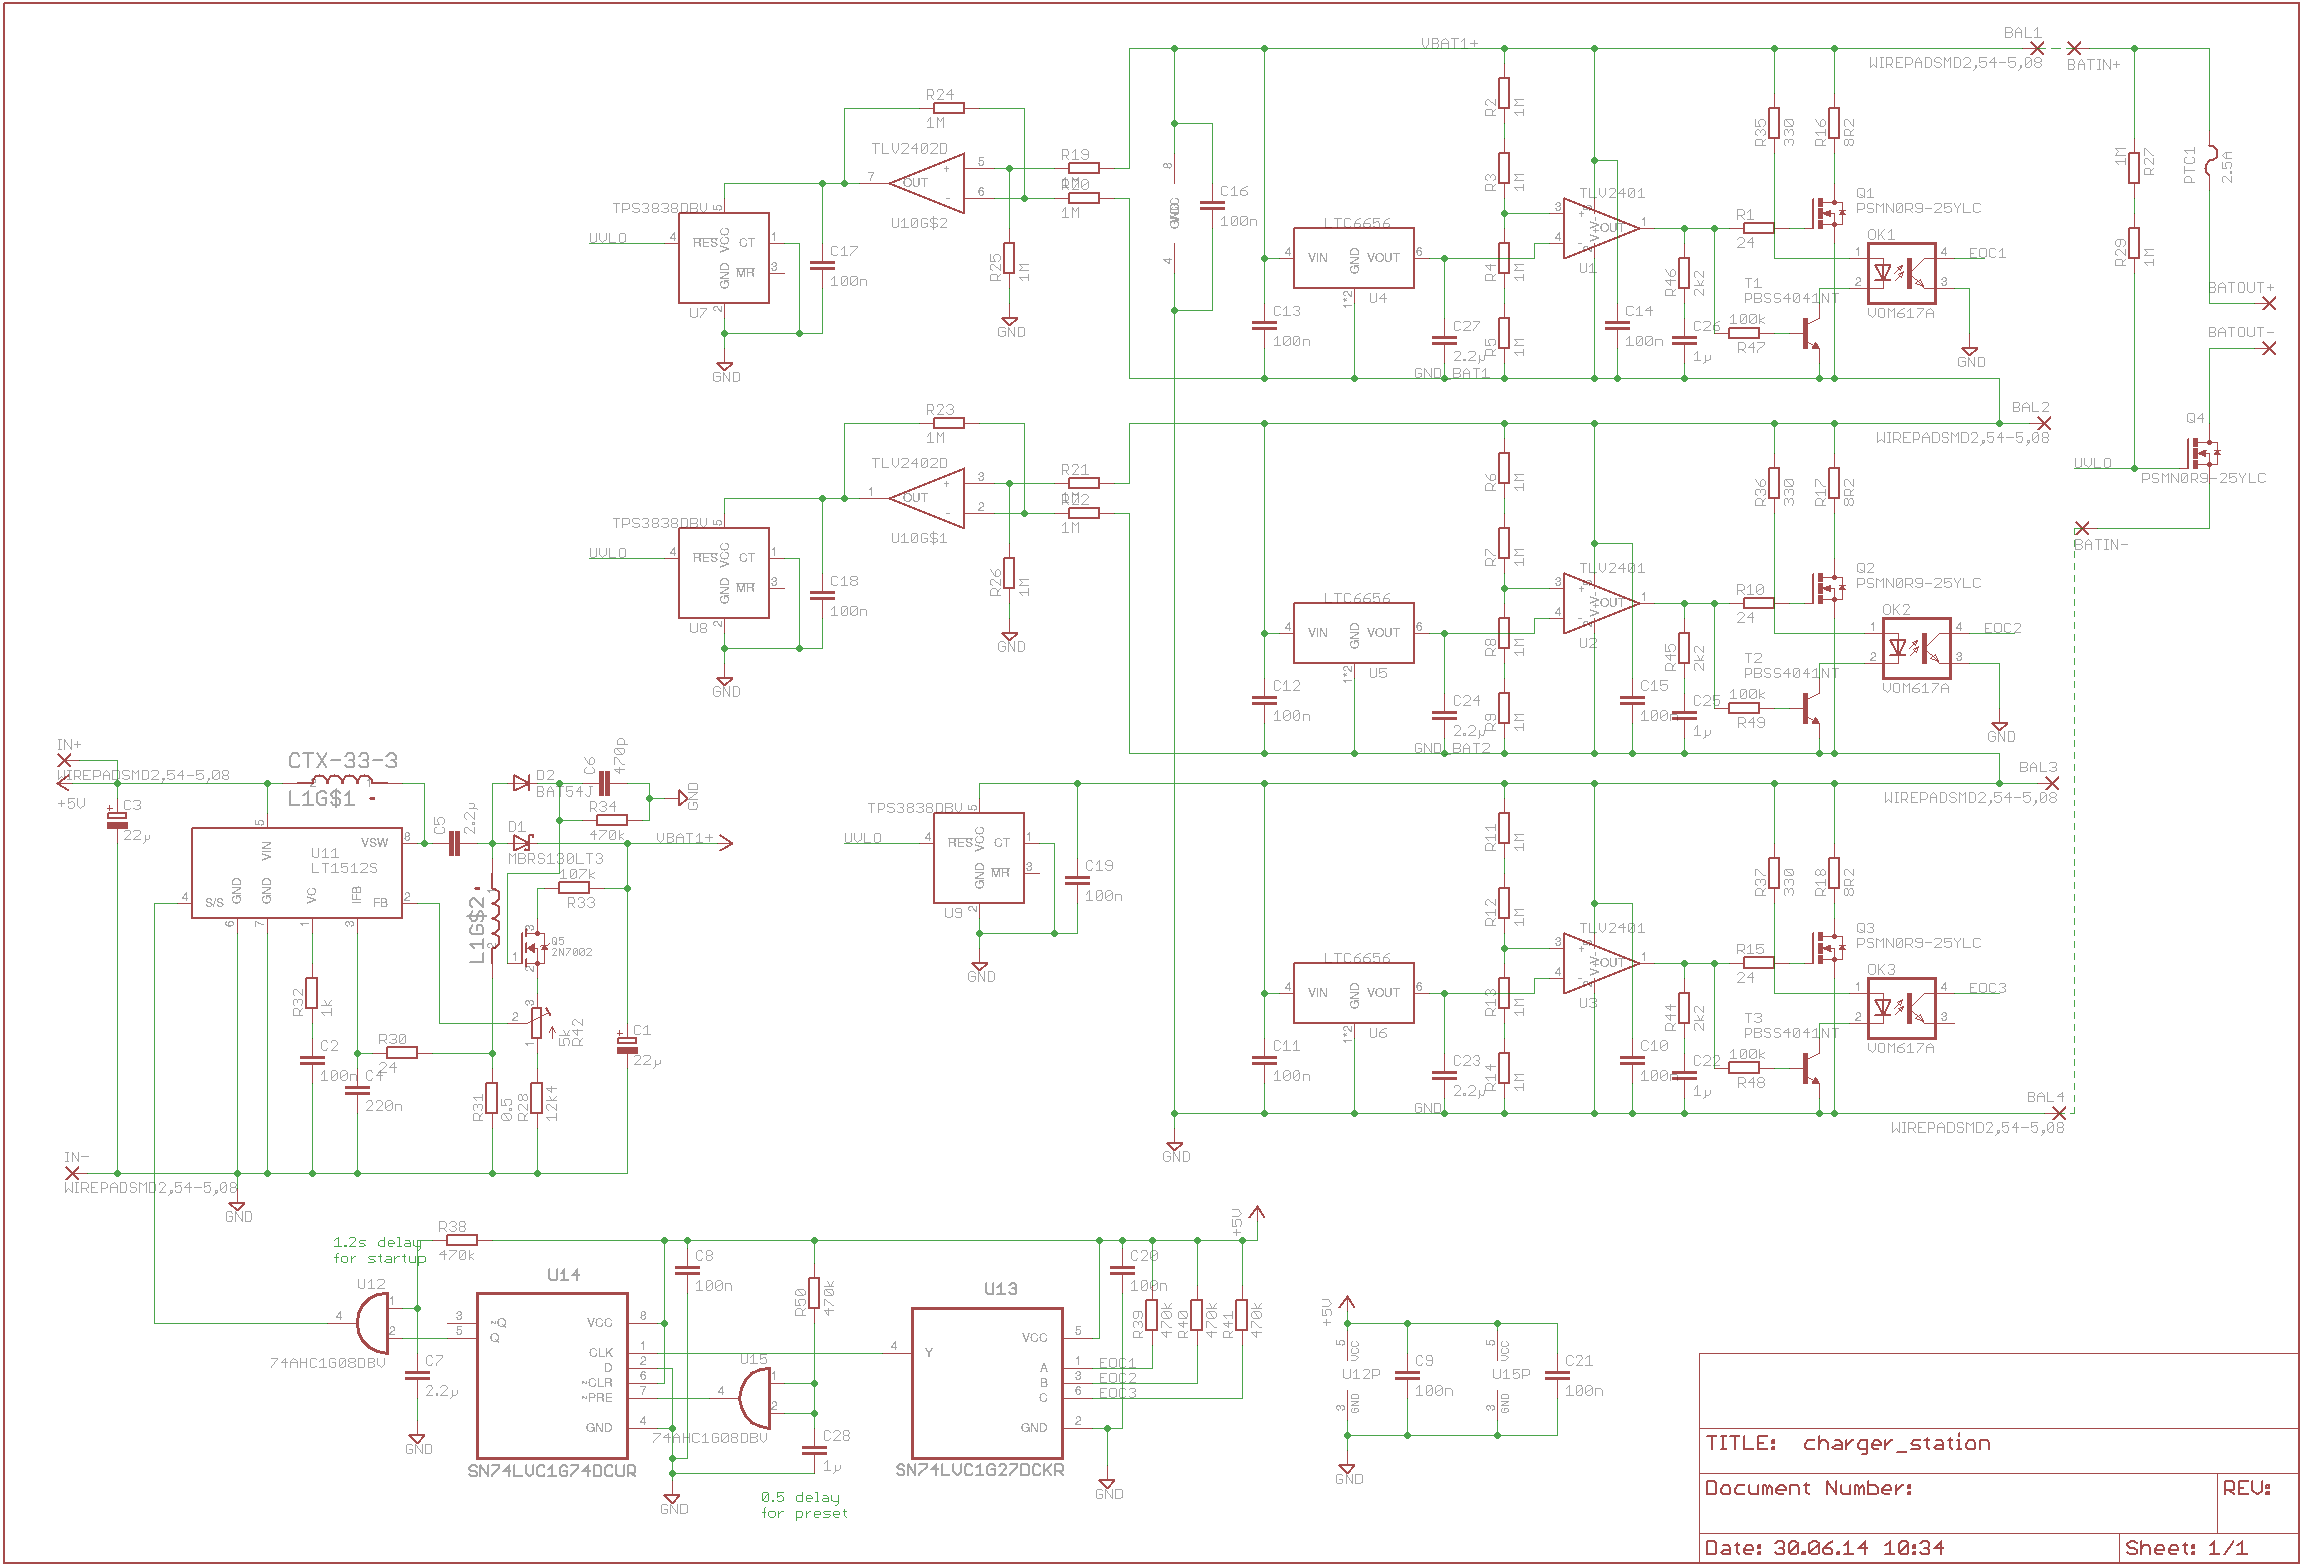 Wireless Power Schematic Electrical Wiring Diagram Mouse Self Clue The Full Explained Circuit Final Charger Station